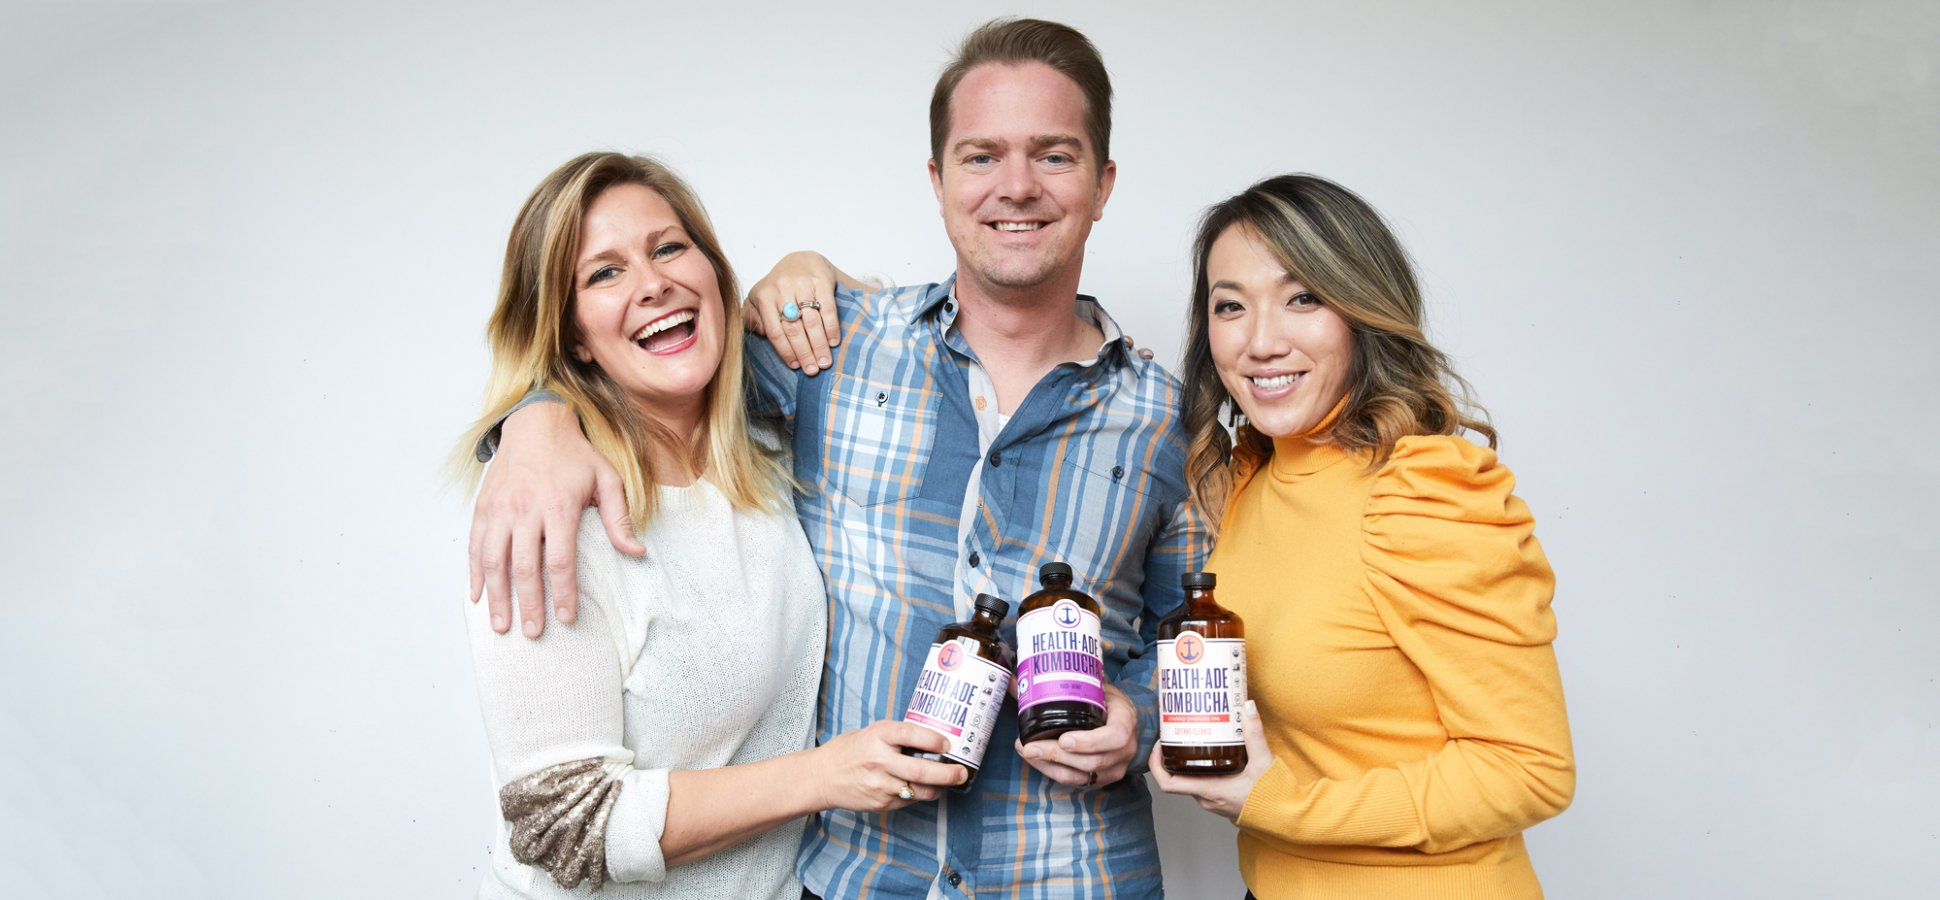 They Had a Lot of Ideas for Starting a Business--and a Lot of Kombucha Lying Around. Finally, the Two Came Together